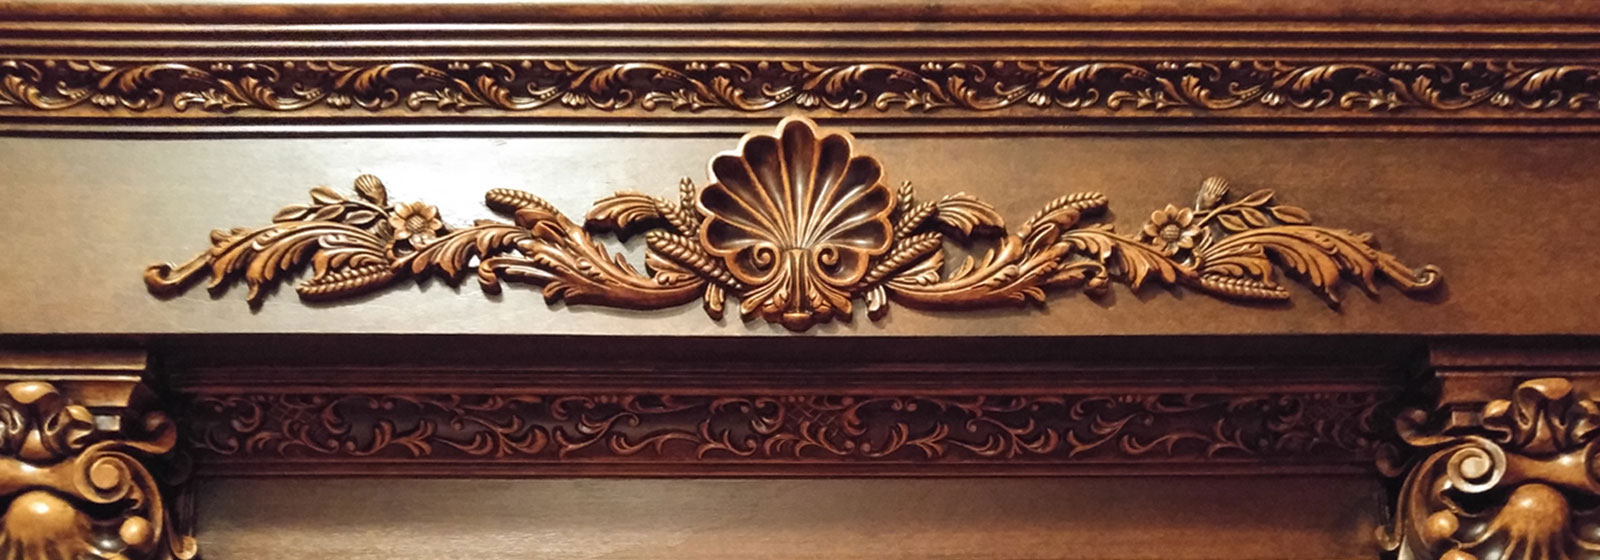 wood appliques for furniture. Fine Furniture Appliques U0026 Onlays Intended Wood For Furniture D